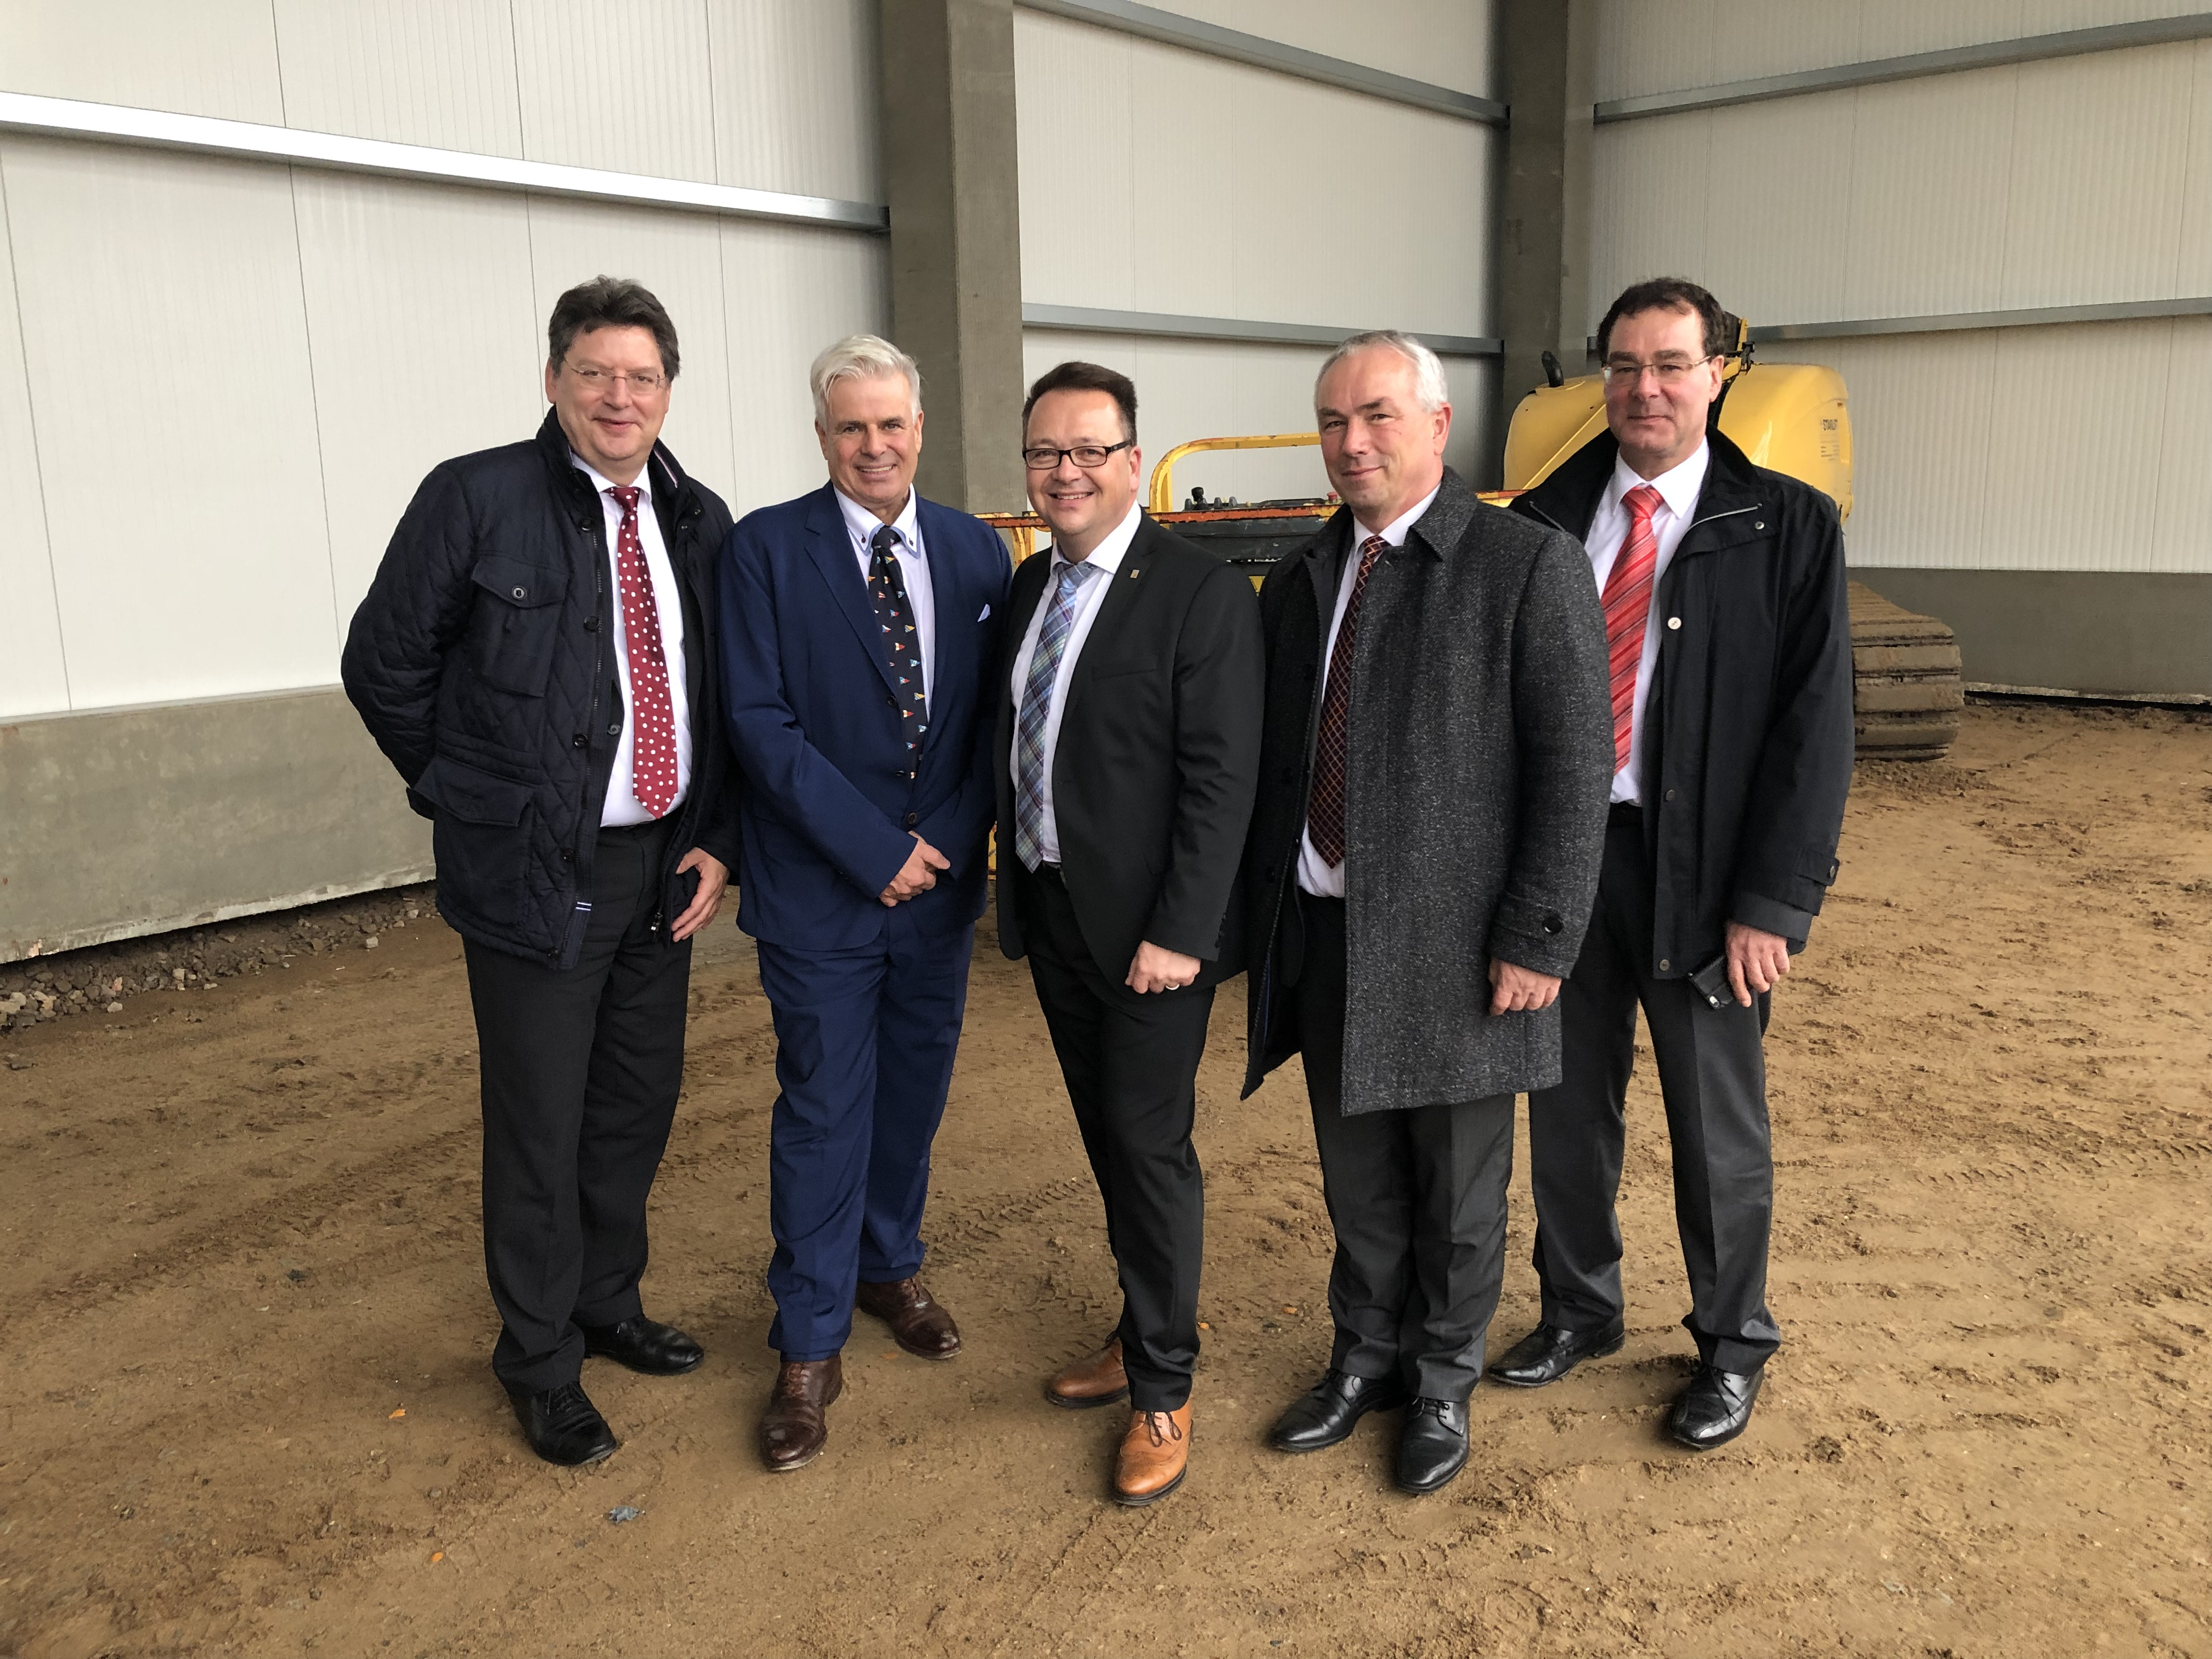 Topping-out ceremony for new logistics centre of Friesland-Kabel GmbH in Wismar